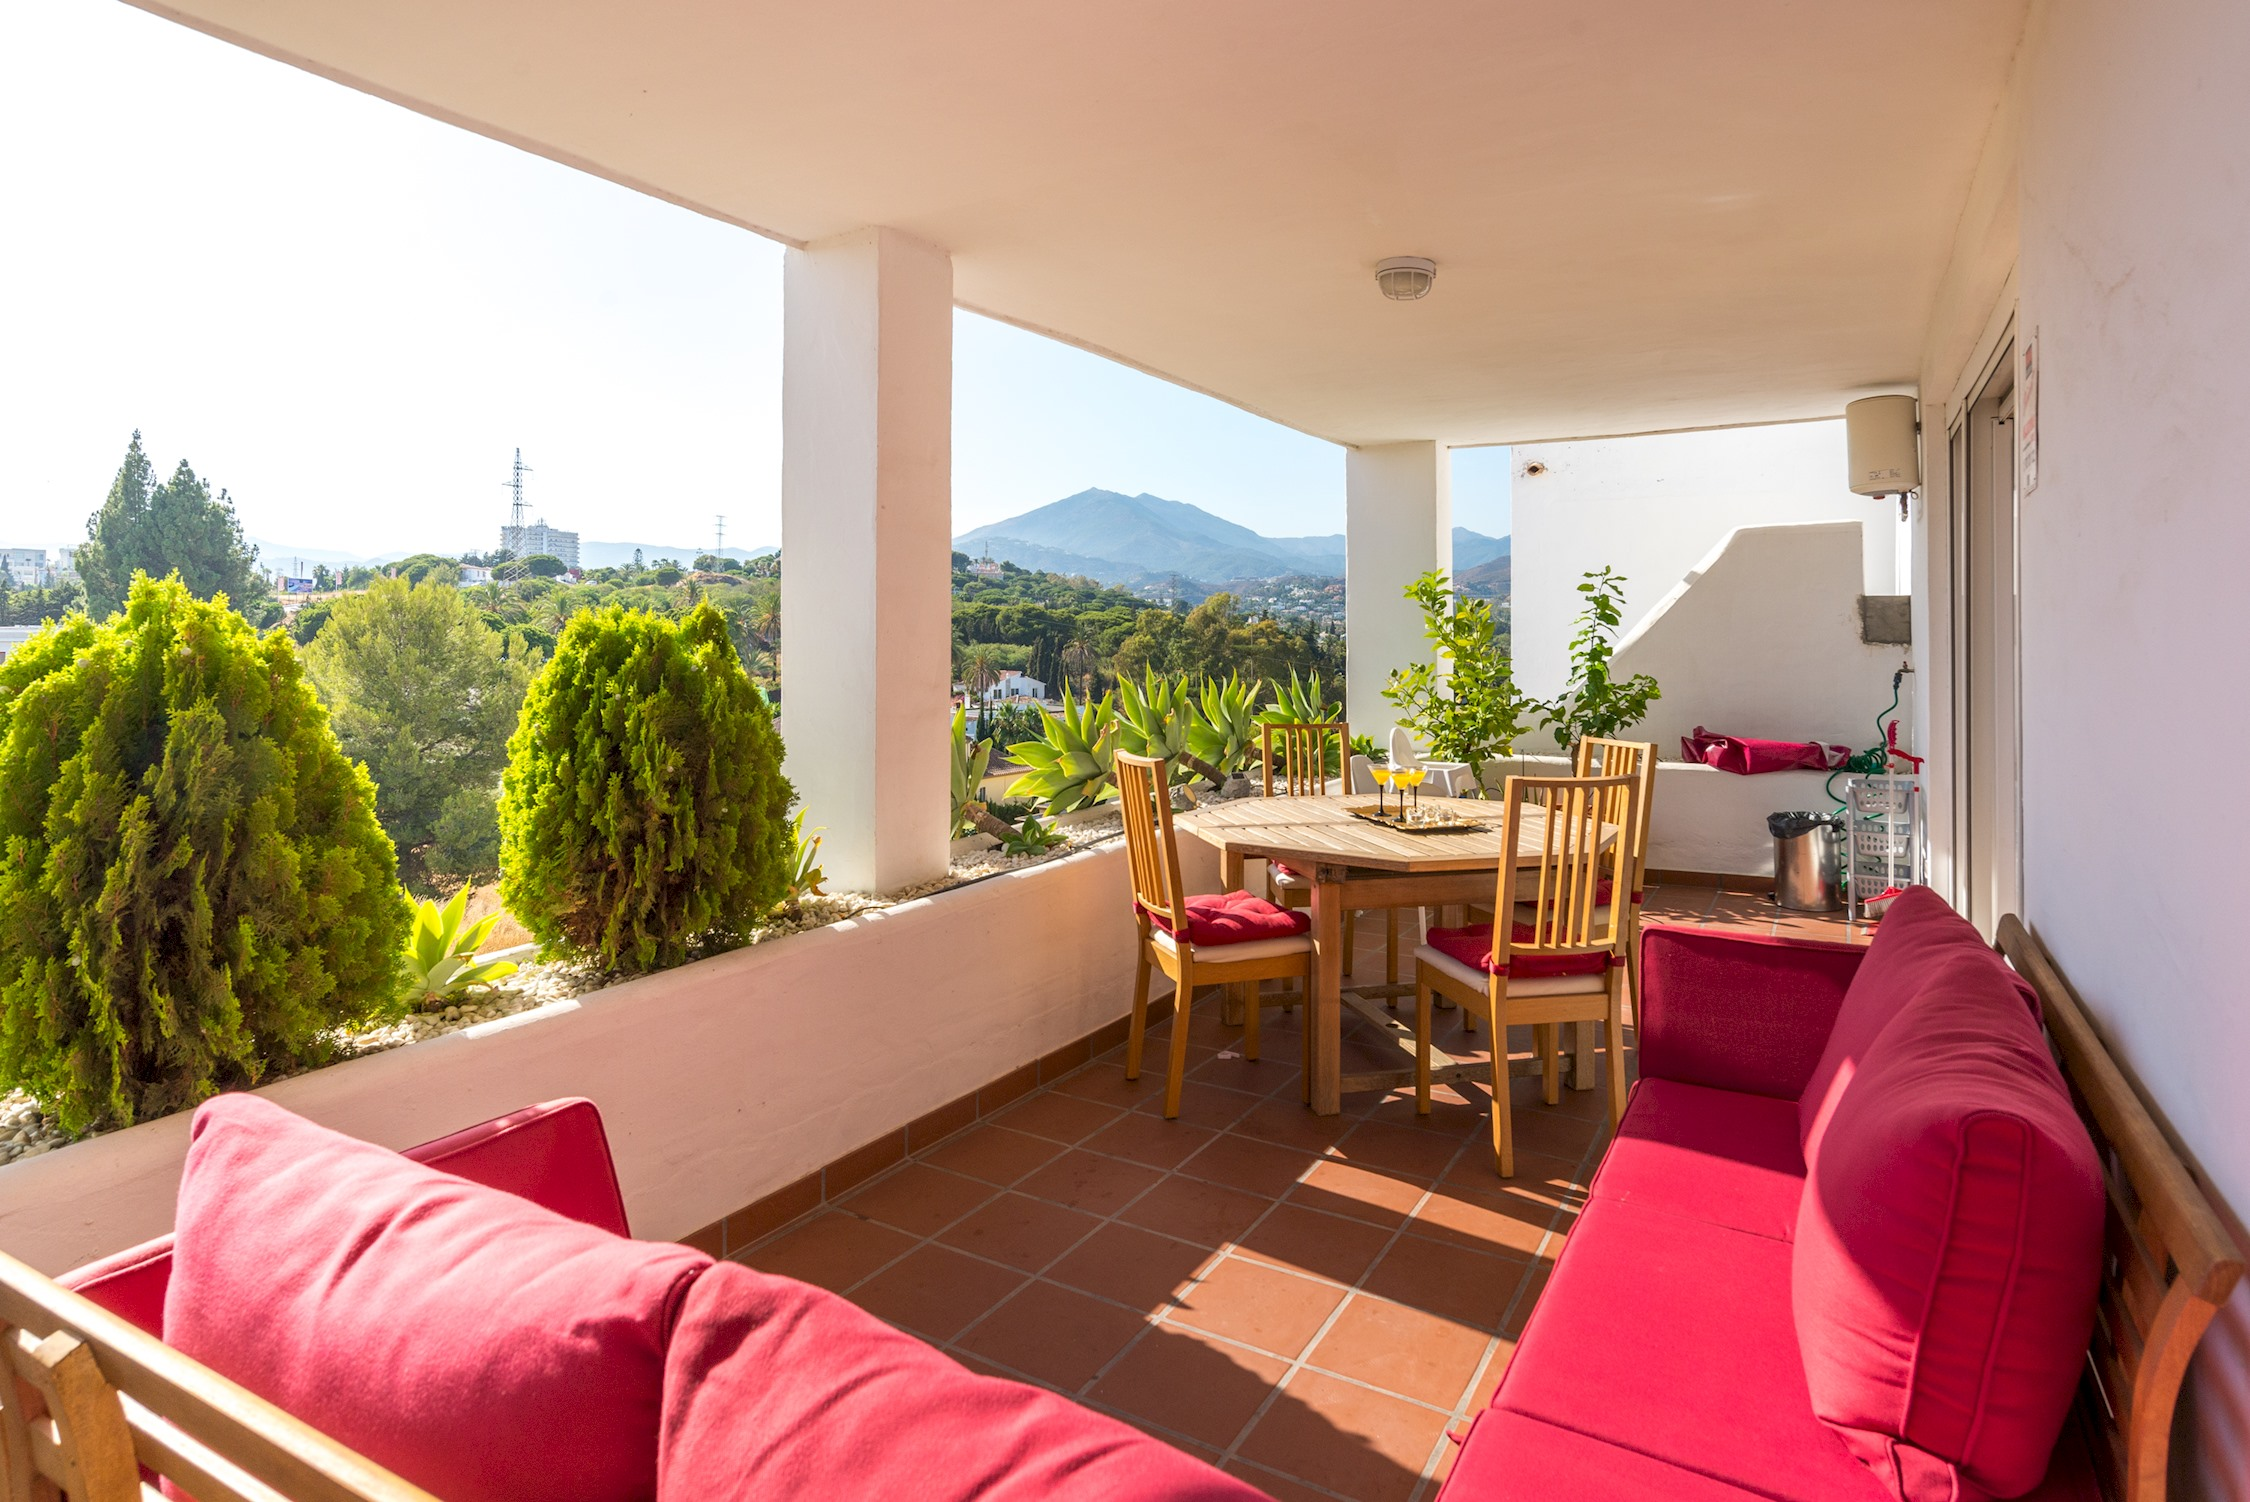 Apartment MalagaSuite Marbella Solarium   Pool photo 21307005